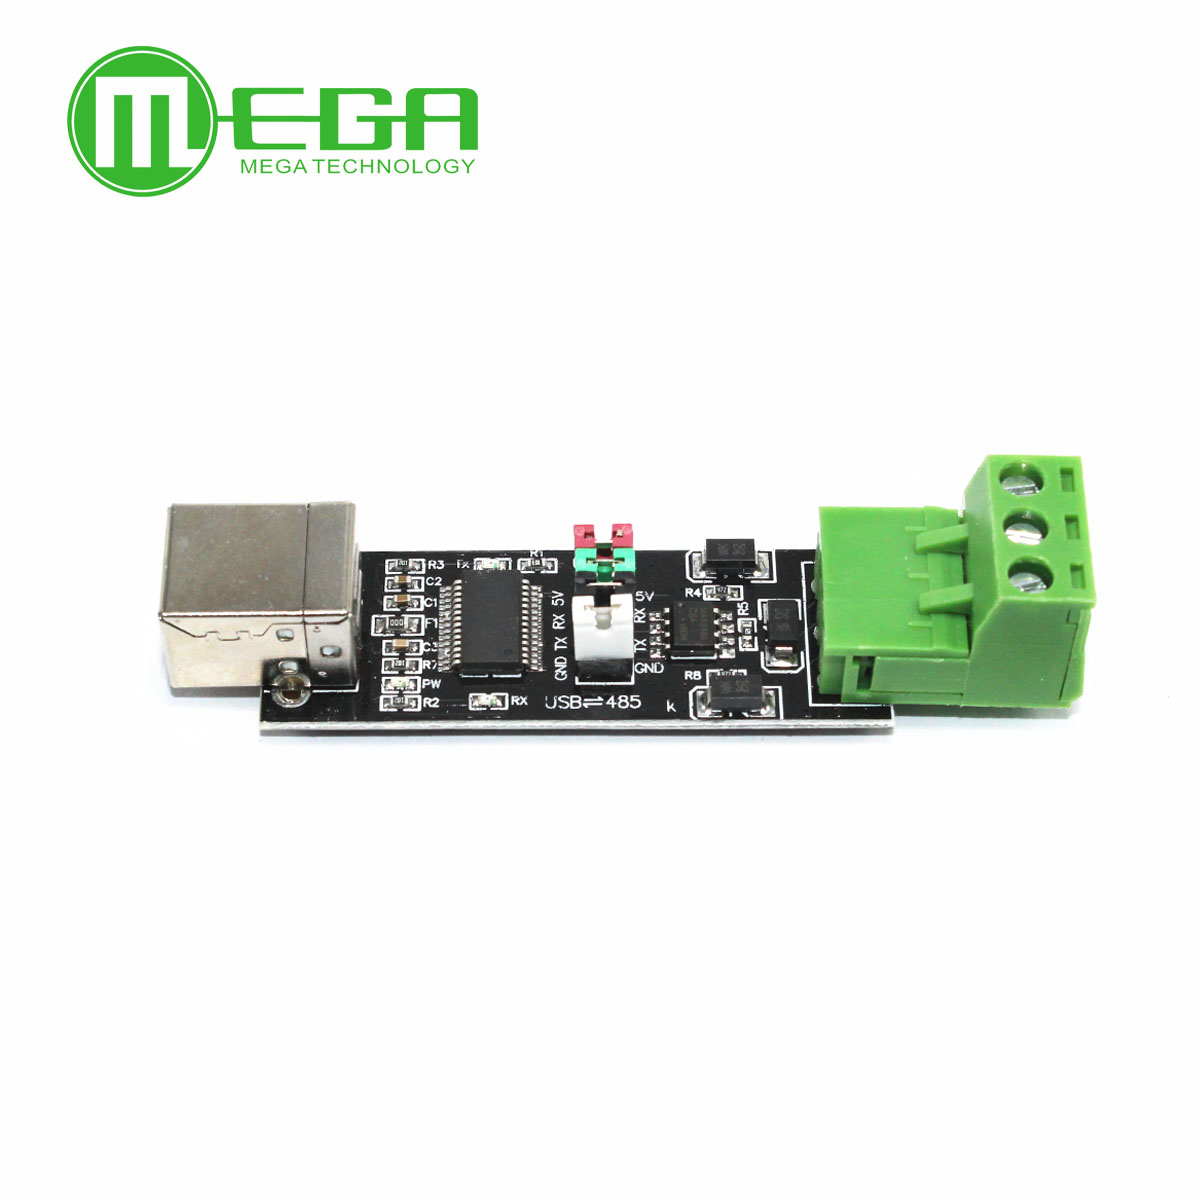 USB 2.0 To TTL RS485 Serial Converter Adapter FTDI FT232RL SN75176 Double Function Double Protection